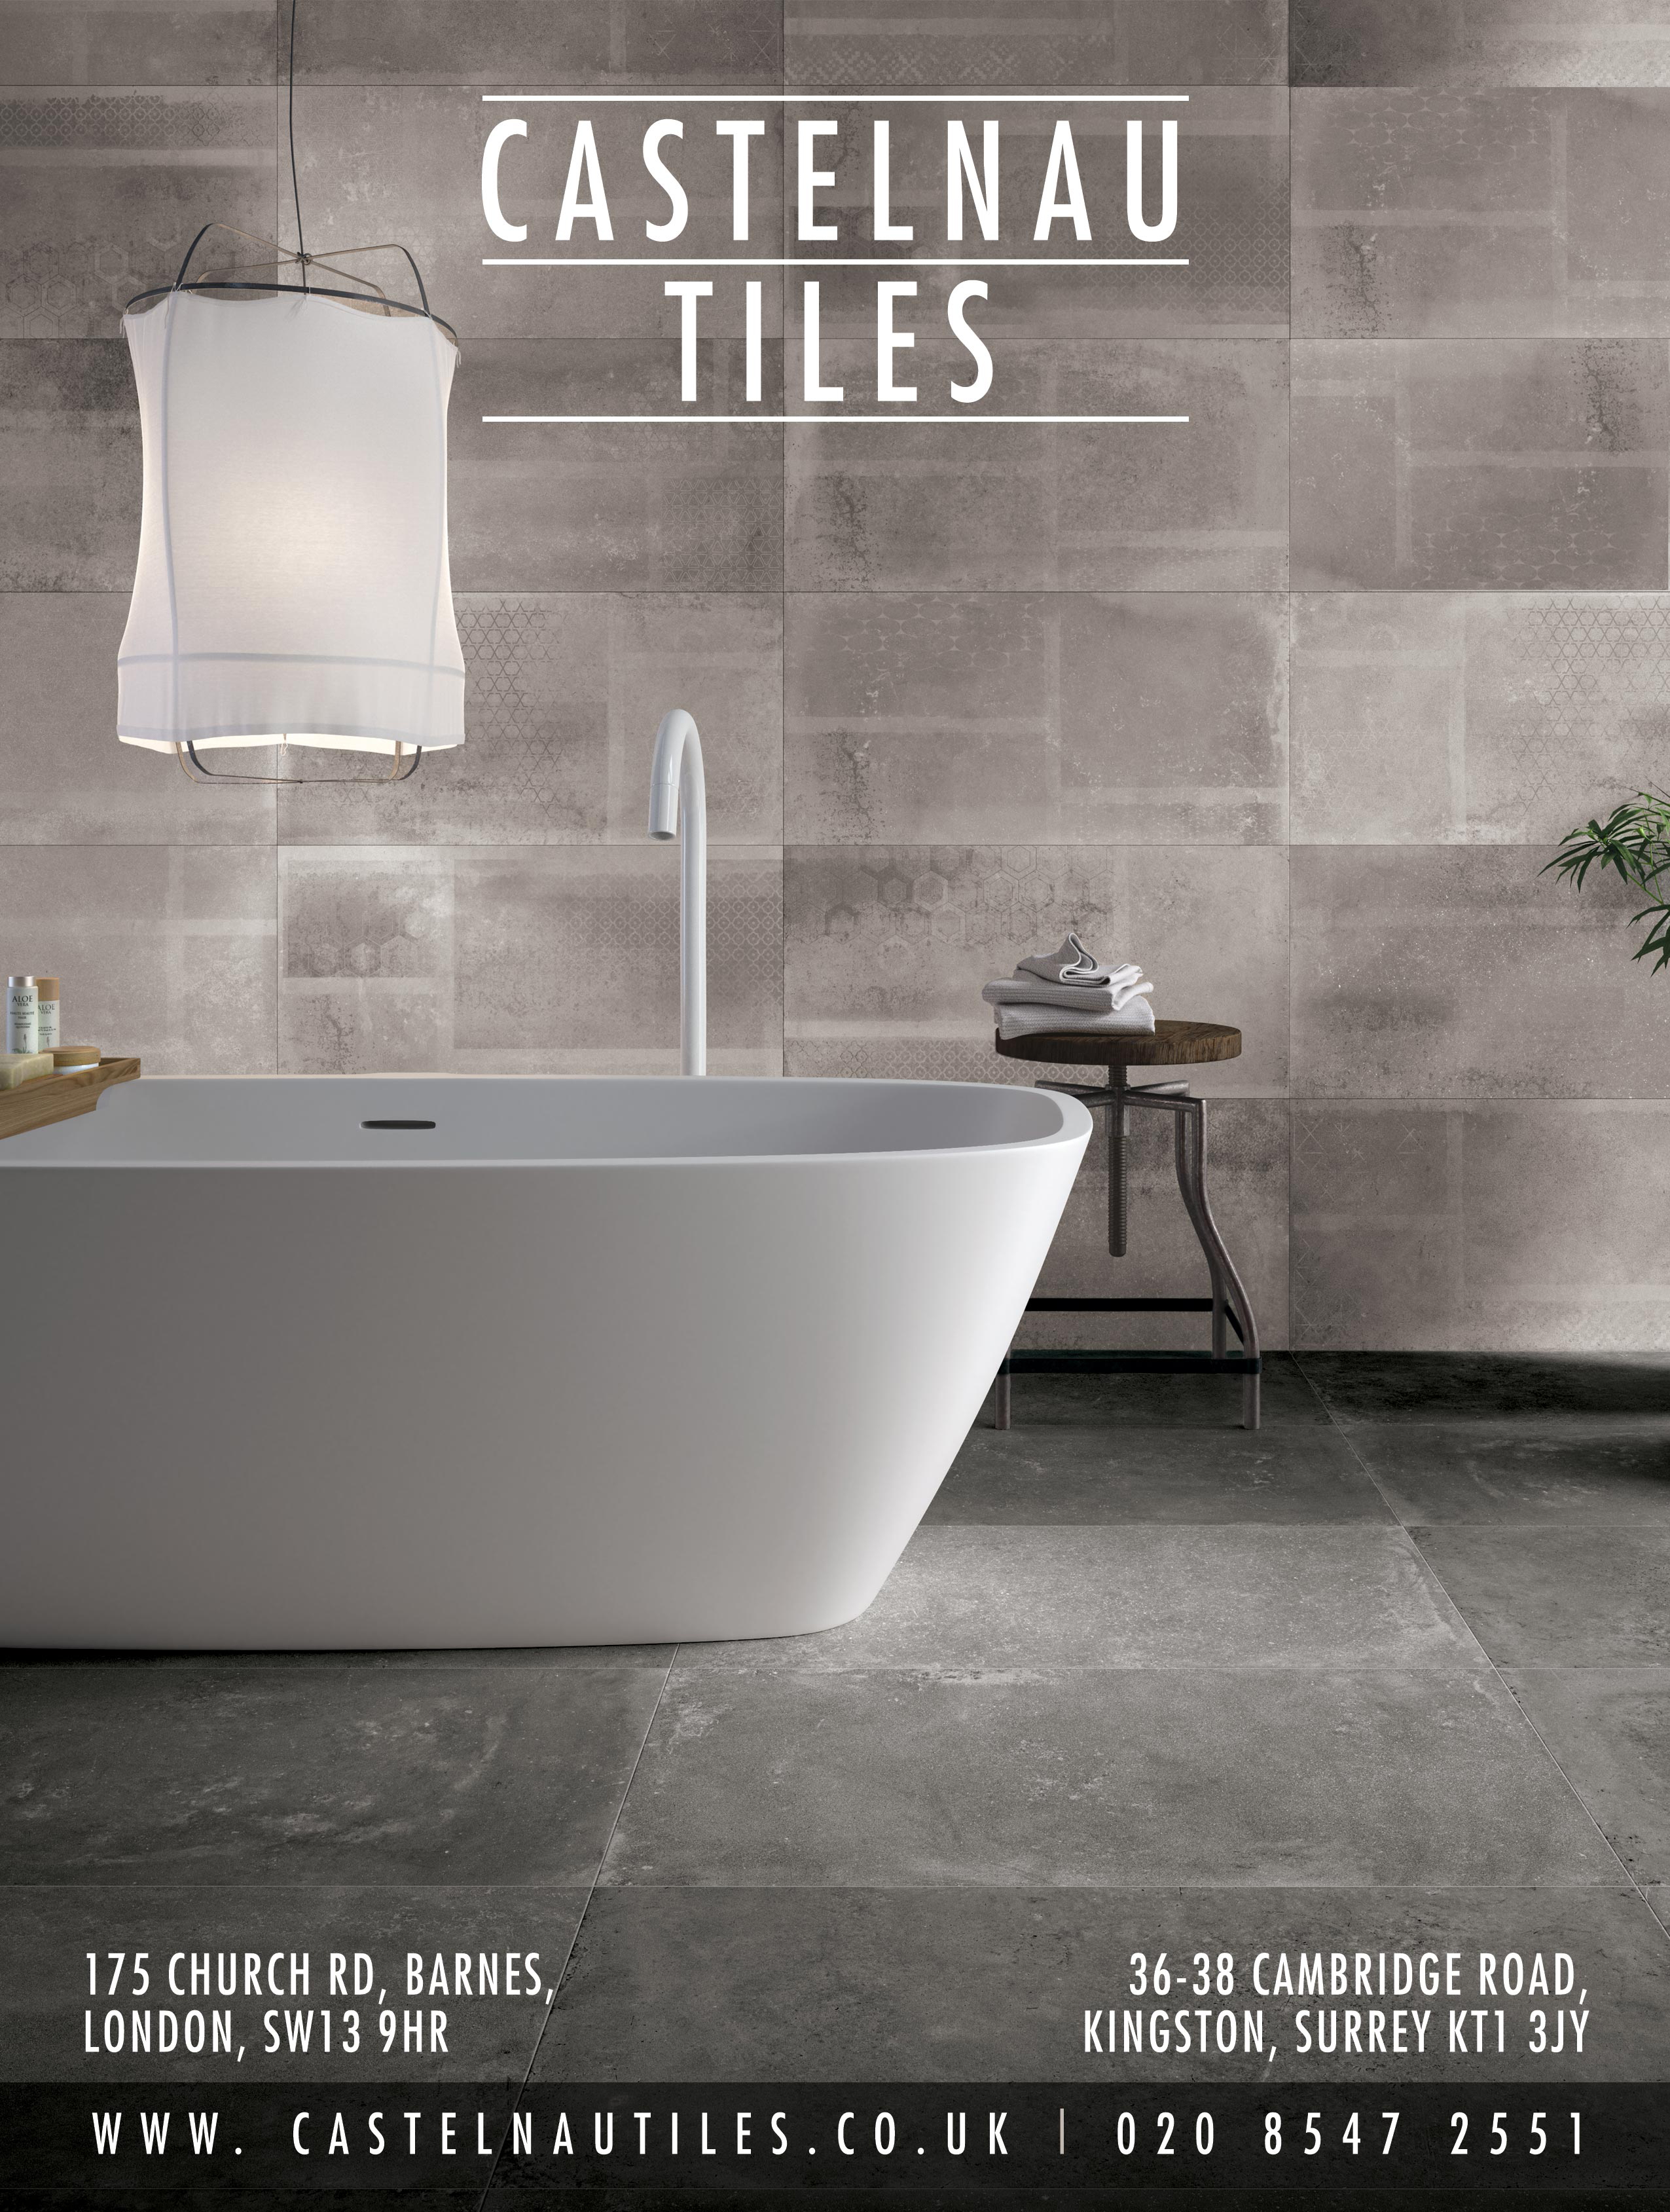 sales opportunity with castelnau tiles